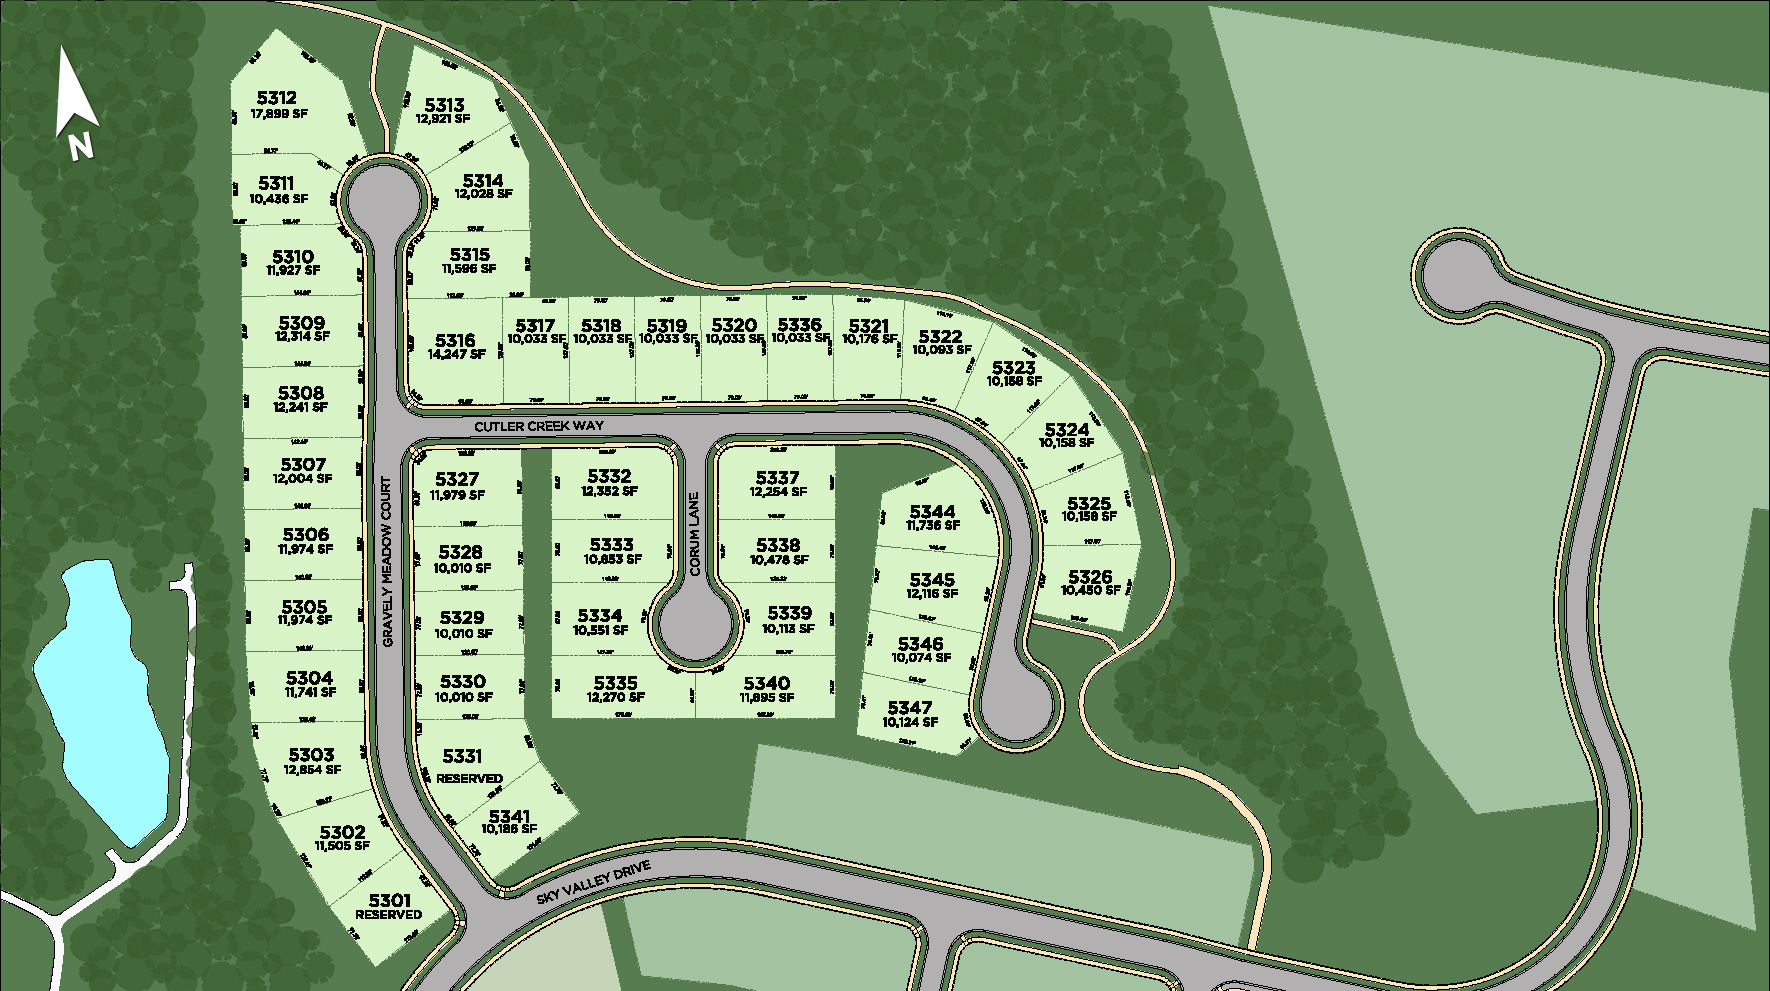 Dominion Valley Country Club - Villas Site Plan